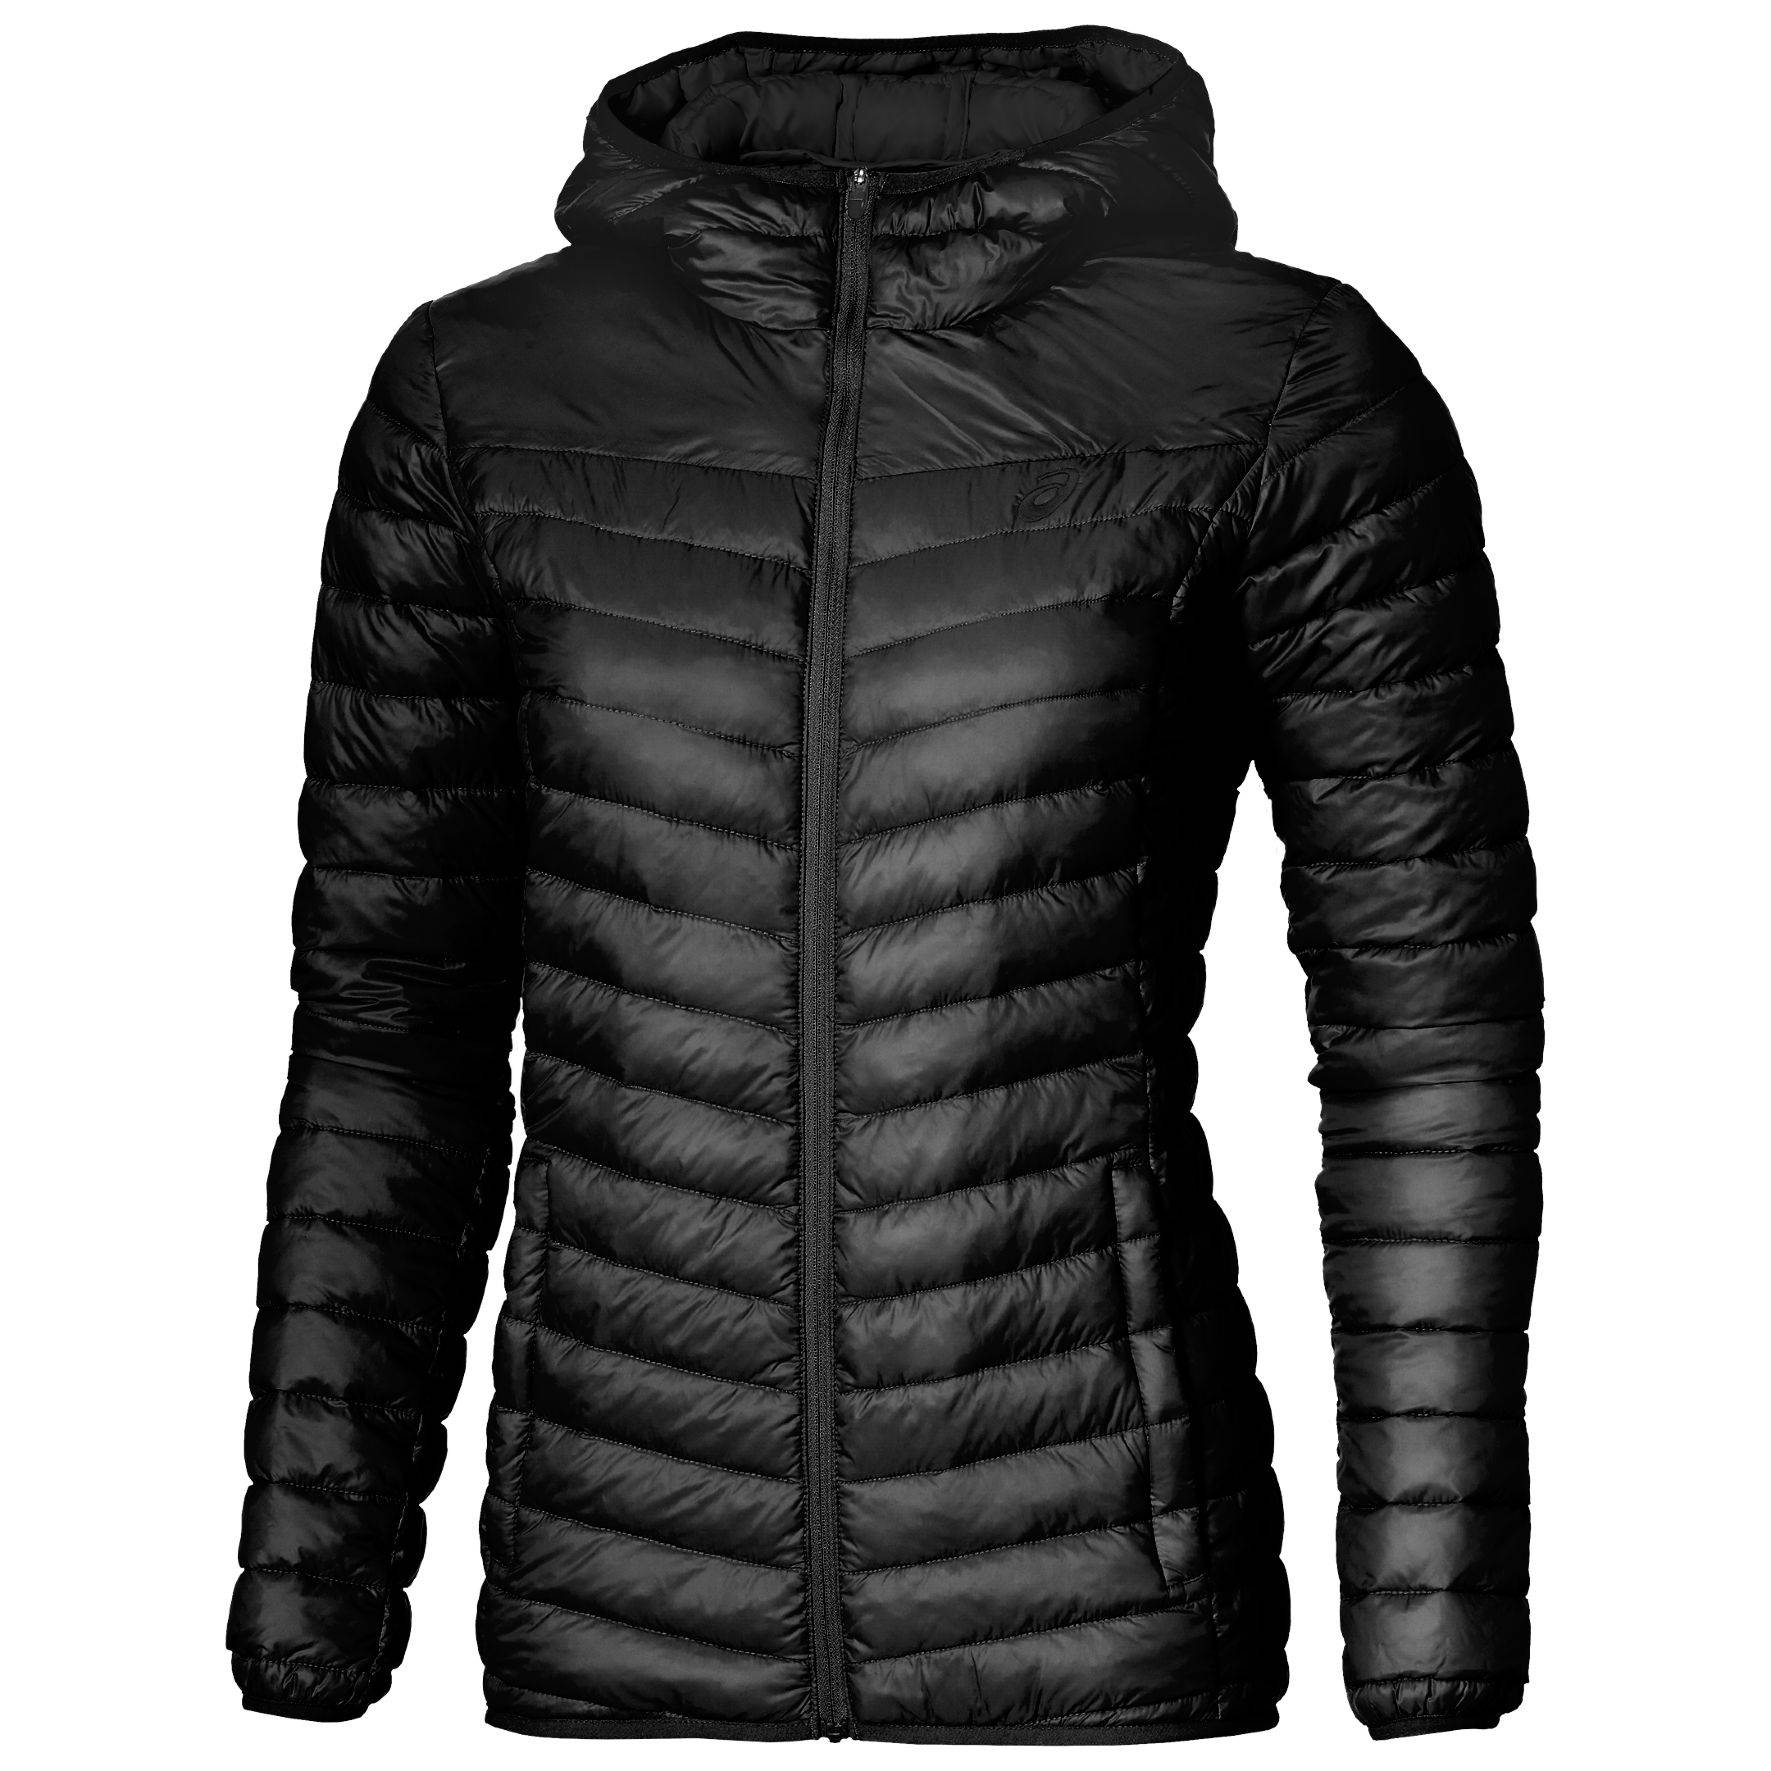 ������� Asics Padded Jacket (�������) ������ - - 134779